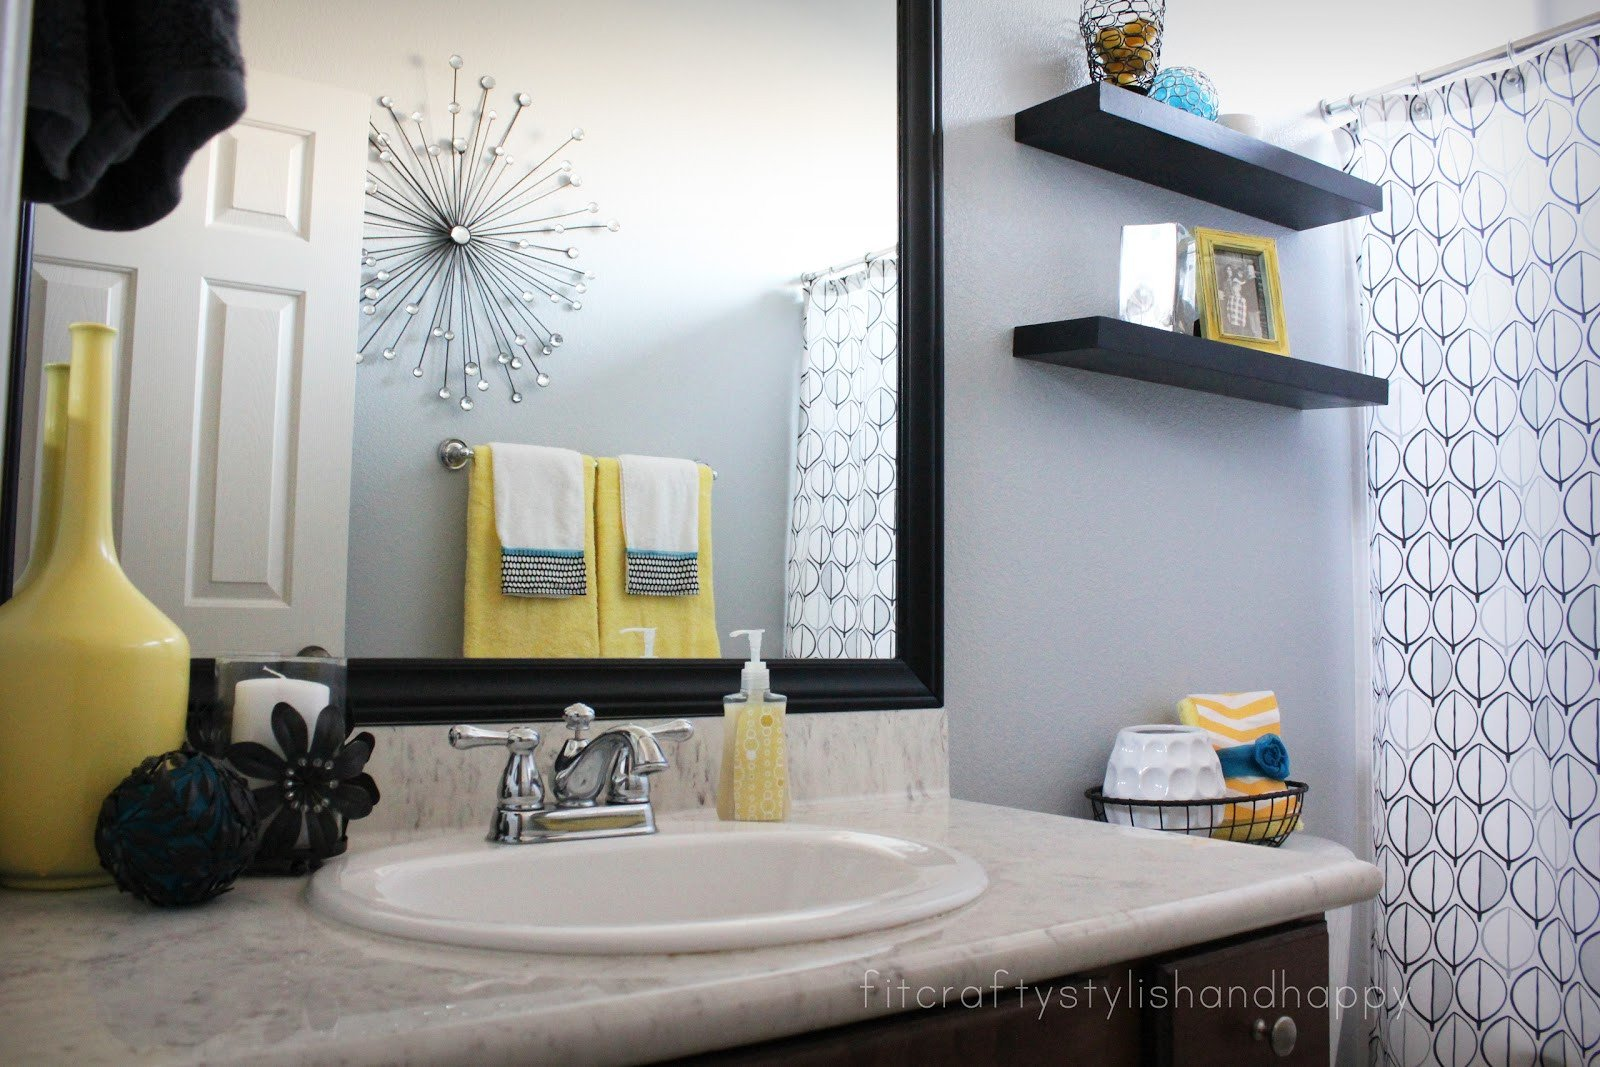 Blue and Gray Bathroom Decor Luxury Fit Crafty Stylish and Happy Guest Bathroom Makeover